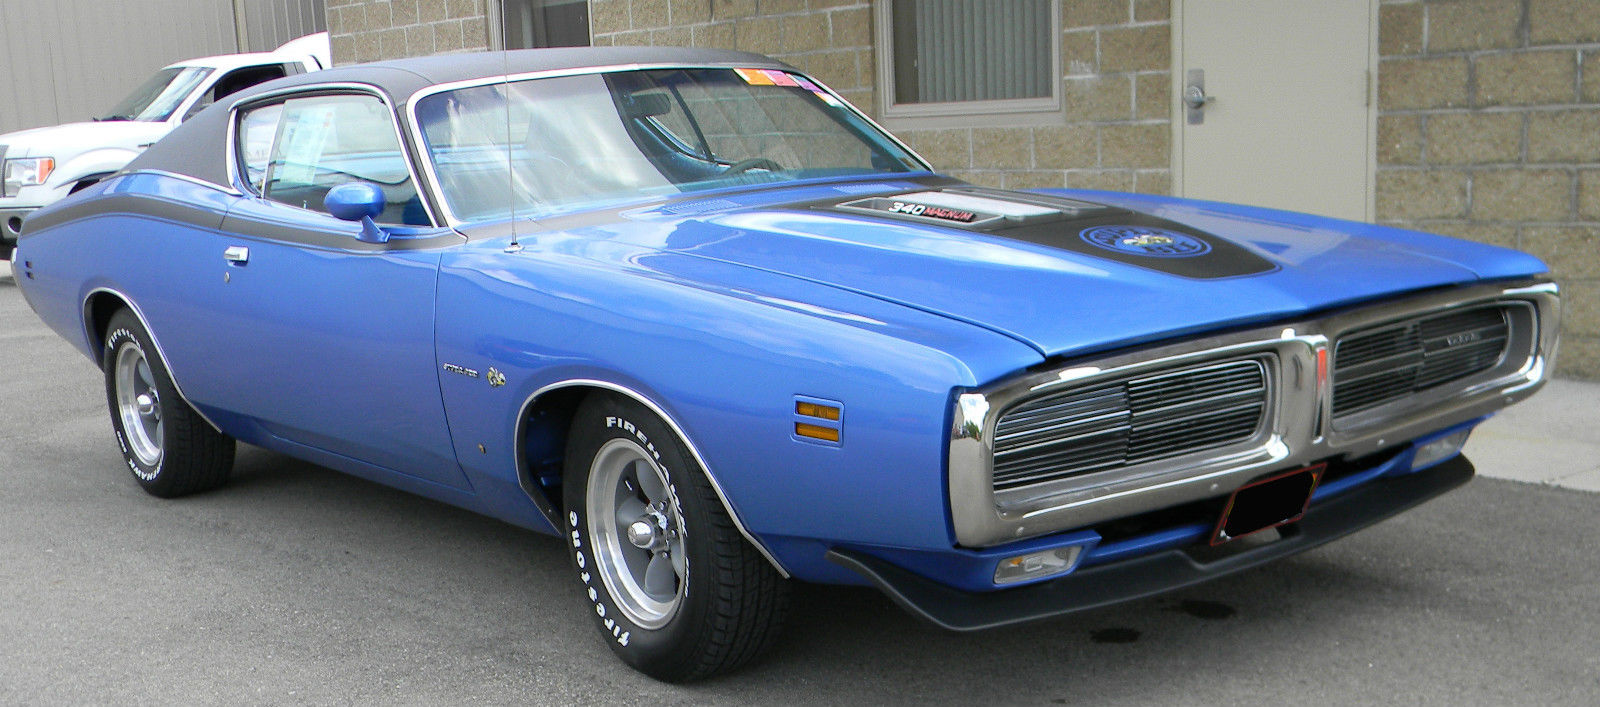 1971 Dodge Charger Super Bee Fastback 340 Ci Automatic For